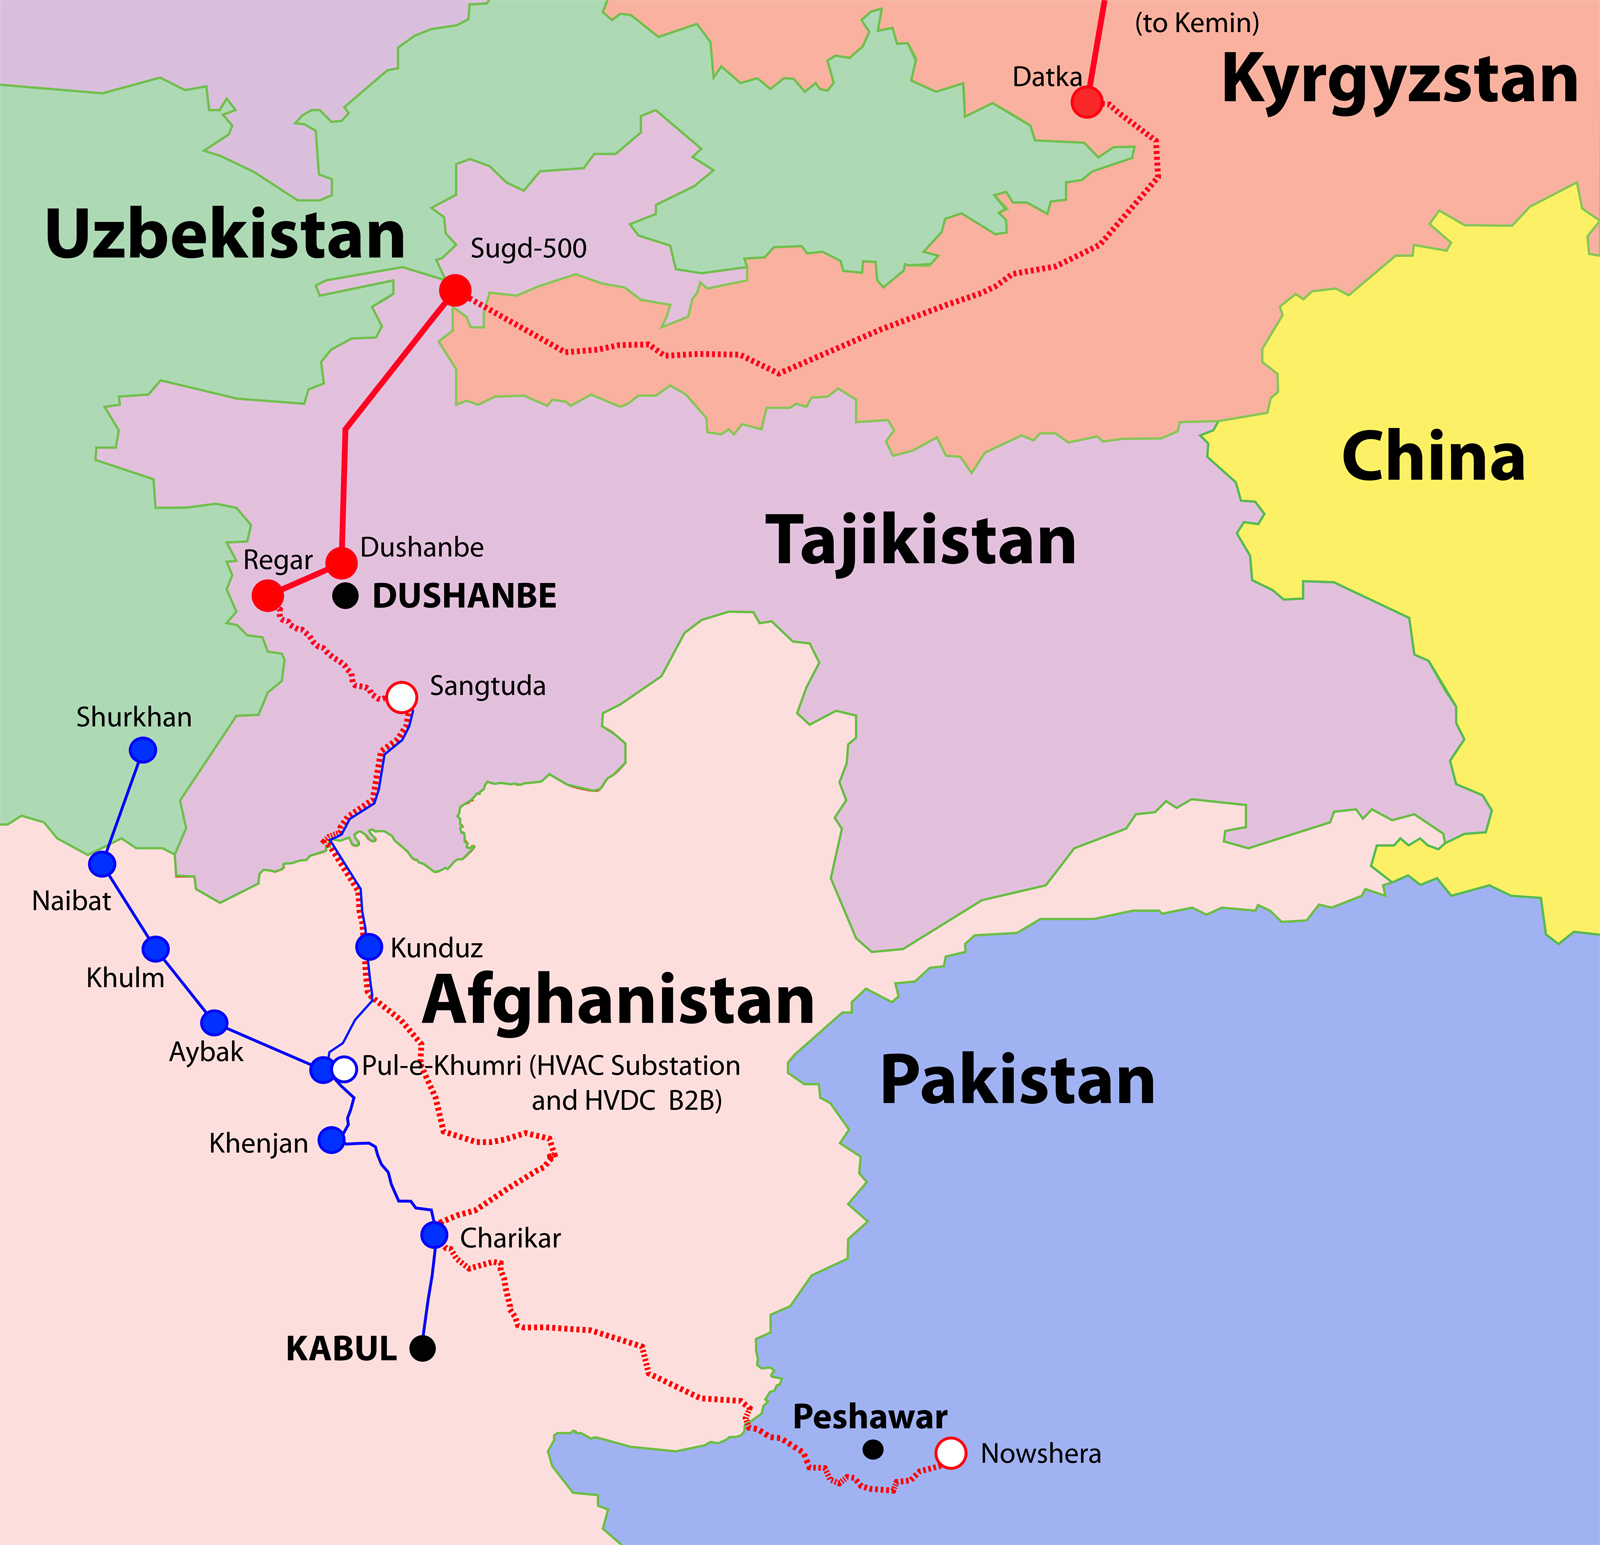 The CASA-1000 project demonstrates co-operation among among Kyrgyzstan, Tajikistan, Pakistan and Afghanistan. [casa-1000.org]